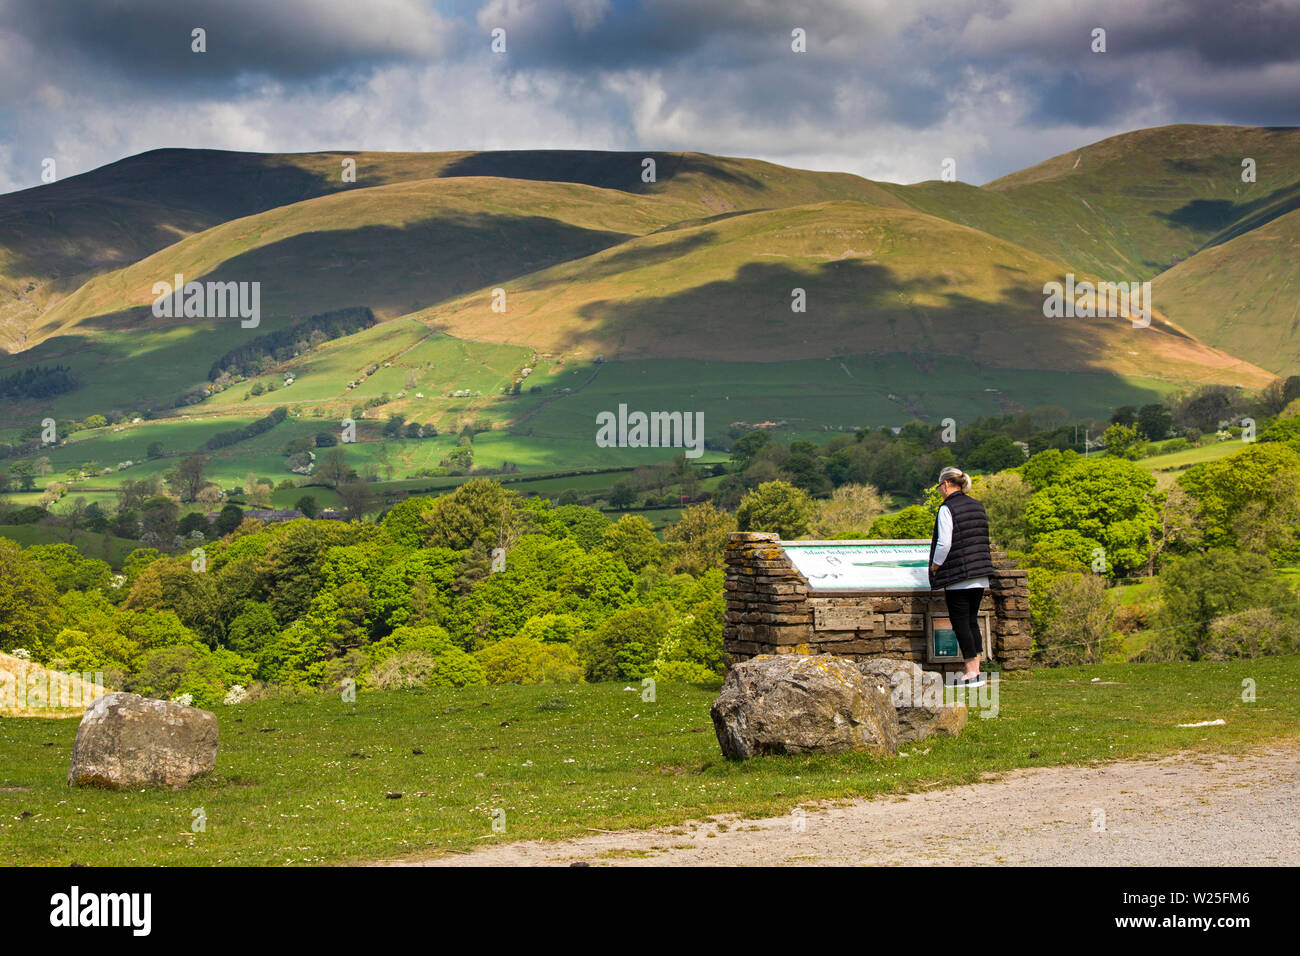 UK, Cumbria, Sedbergh, Frostrow and Soolbank, visitor at Tom Croft Hill viewpoint enjoying view of Howgill Fells - Stock Image